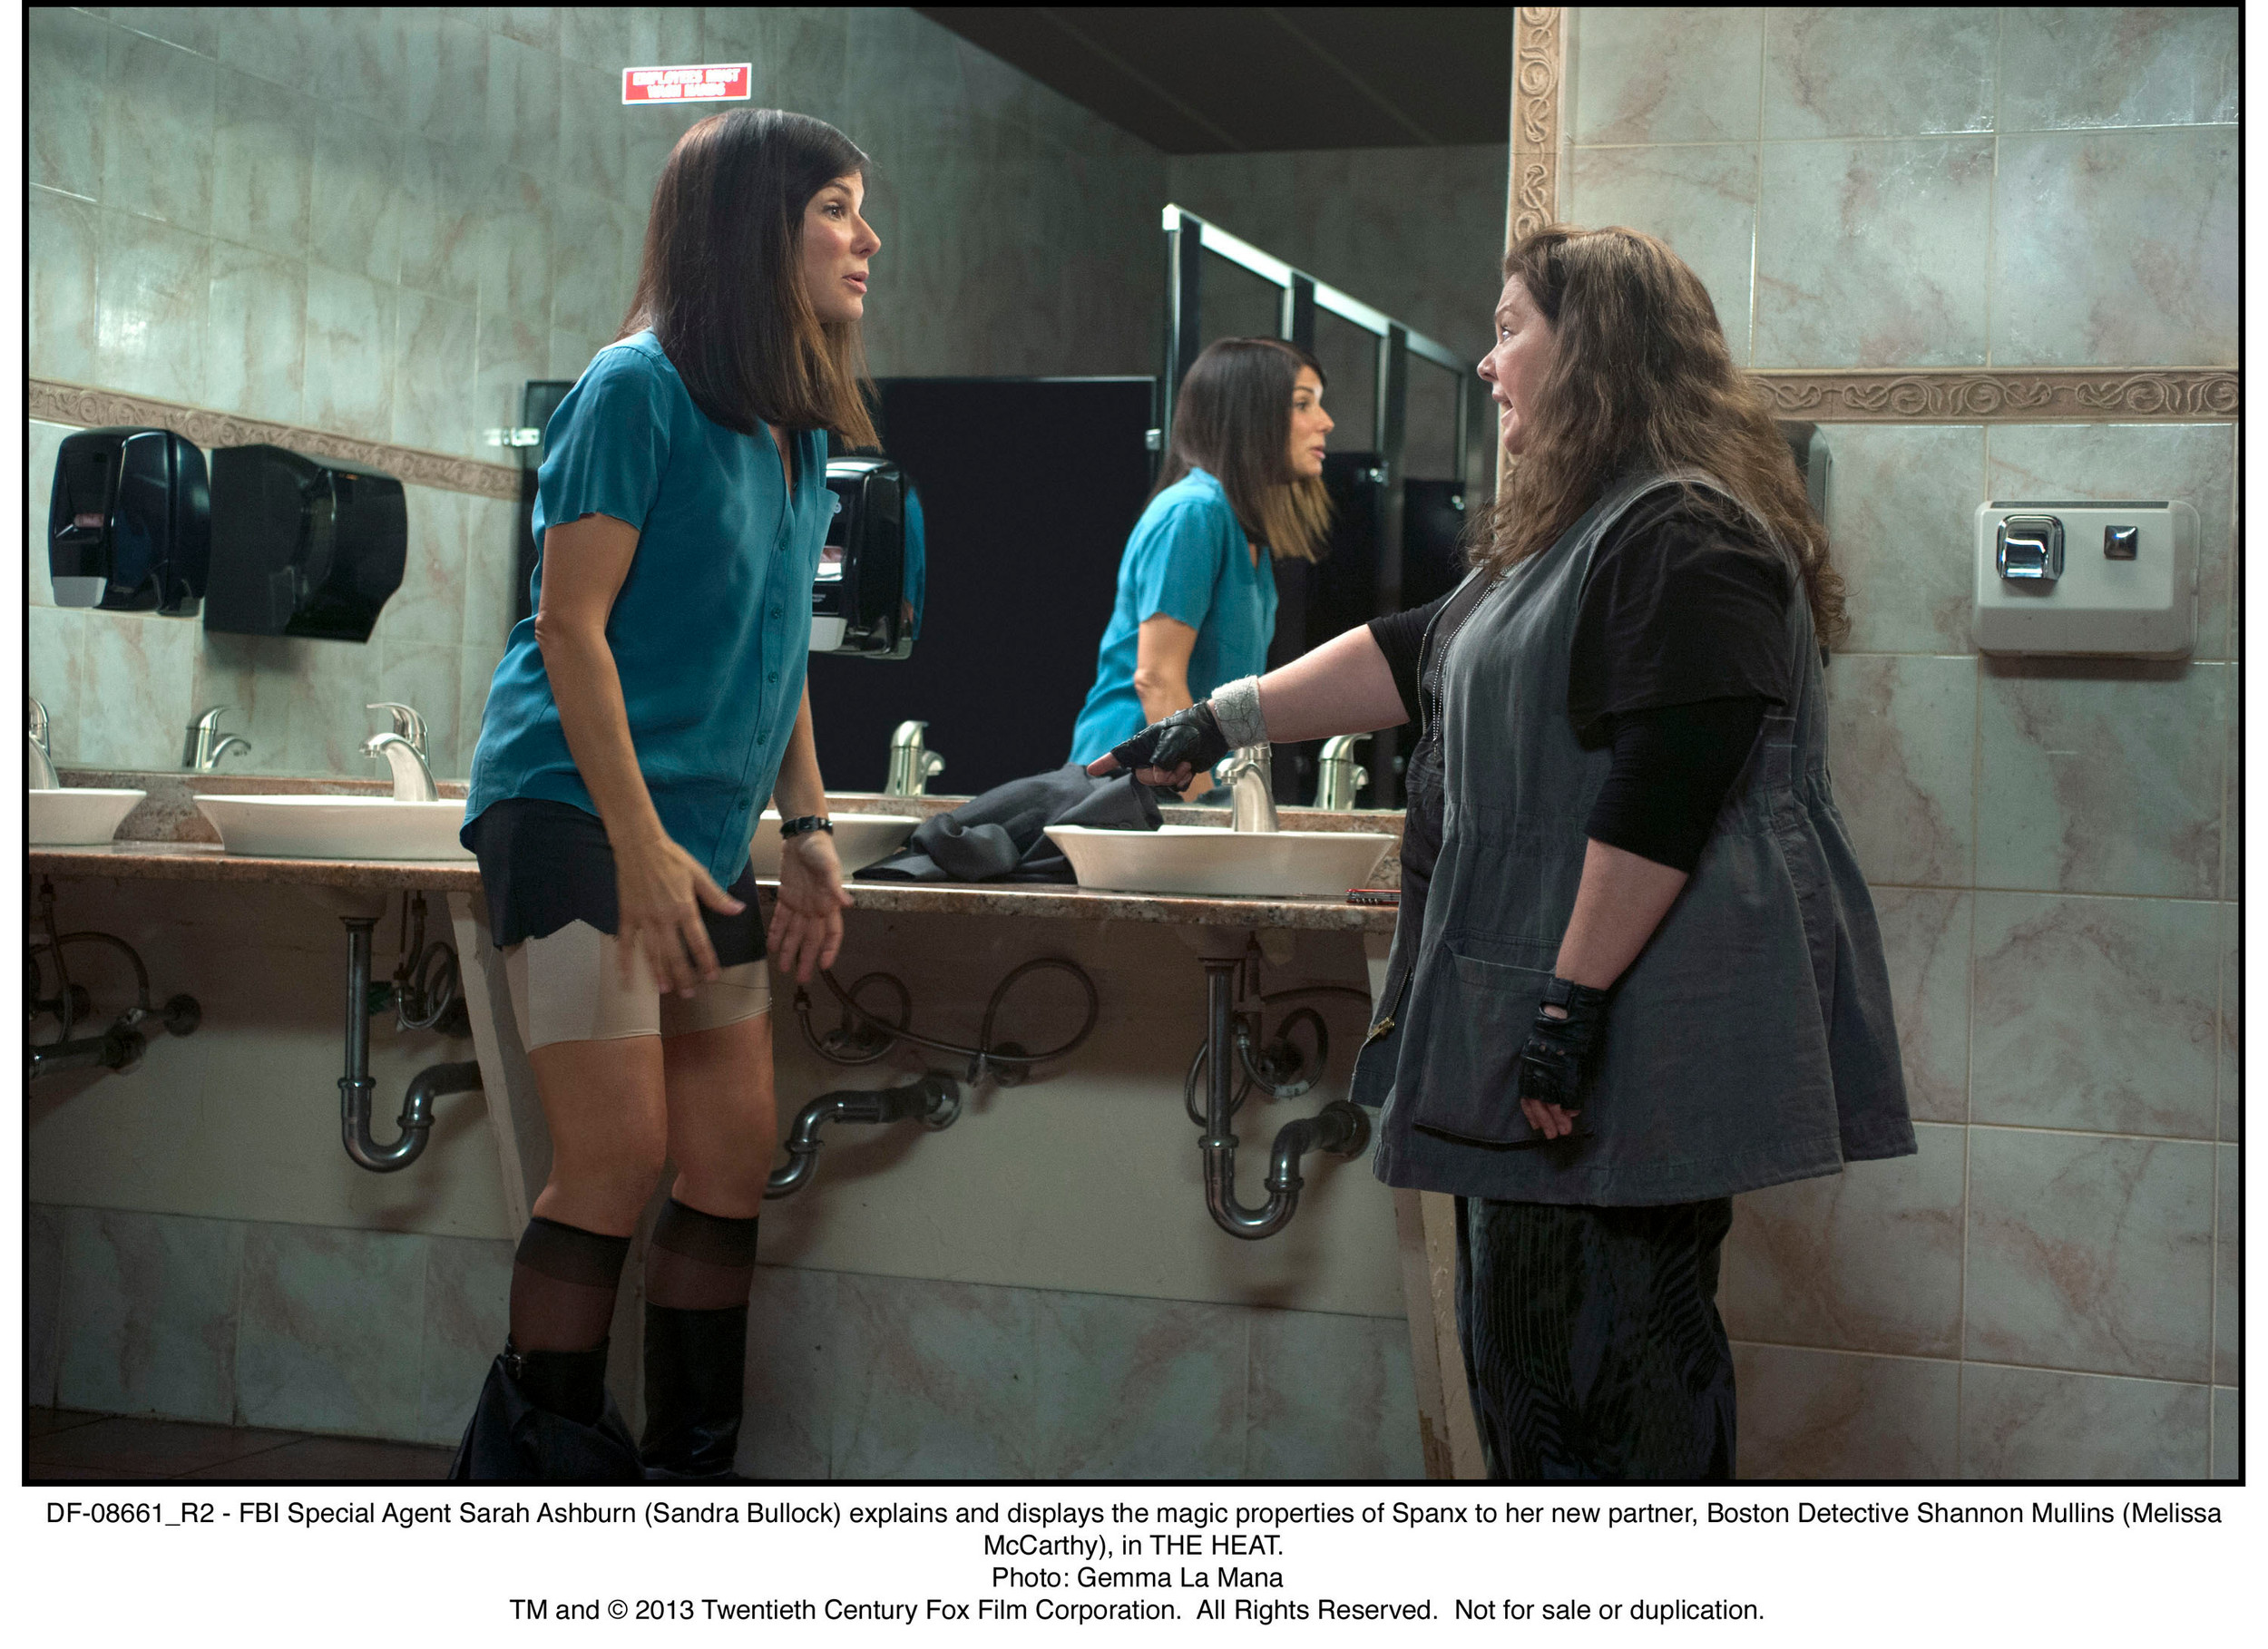 DF-08661_R2 - FBI Special Agent Sarah Ashburn (Sandra Bullock) explains and displays the magic properties of Spanx to her new partner, Boston Detective Shannon Mullins (Melissa McCarthy), in THE HEAT.